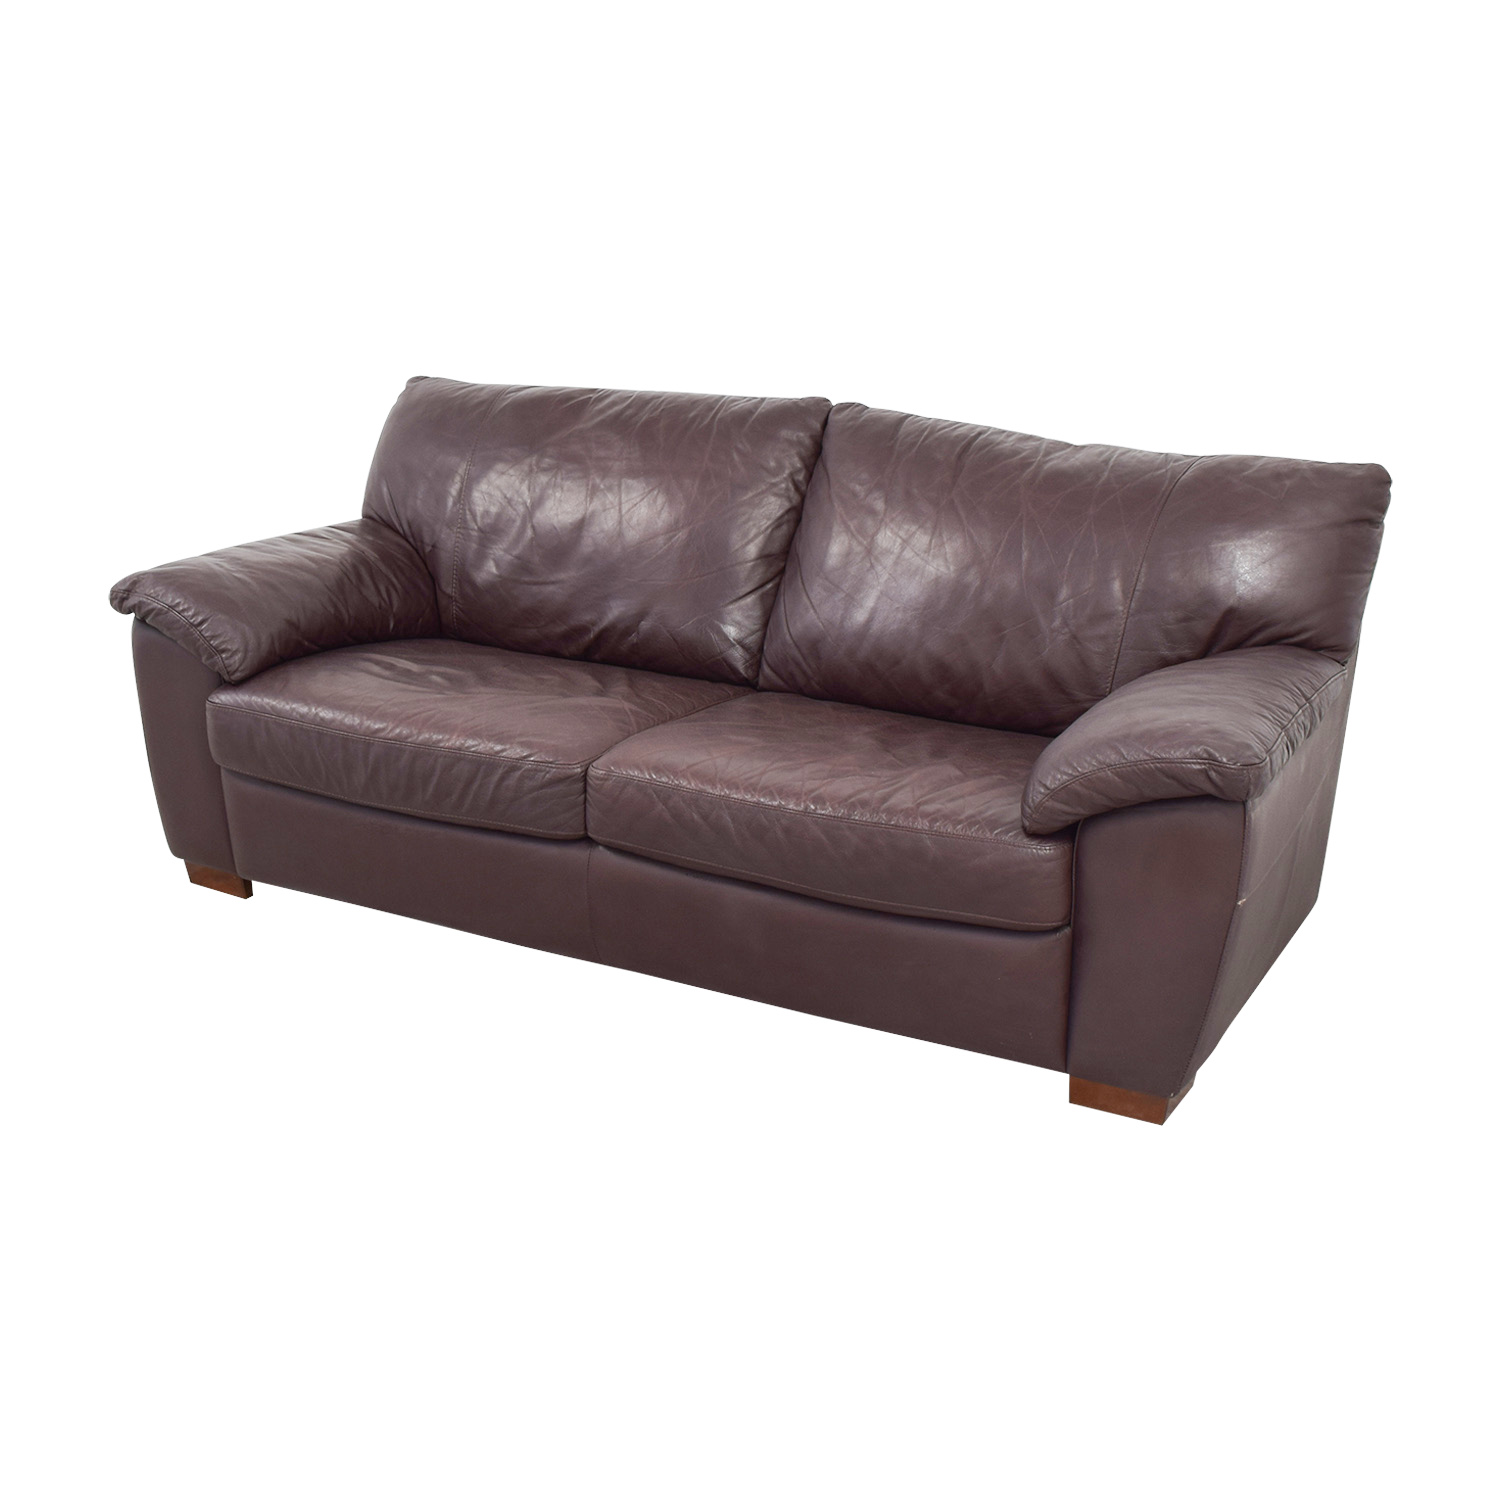 Ikea White Leather Couch Sofas: IKEA IKEA Vreta Brown Leather Two-Cushion Sofa